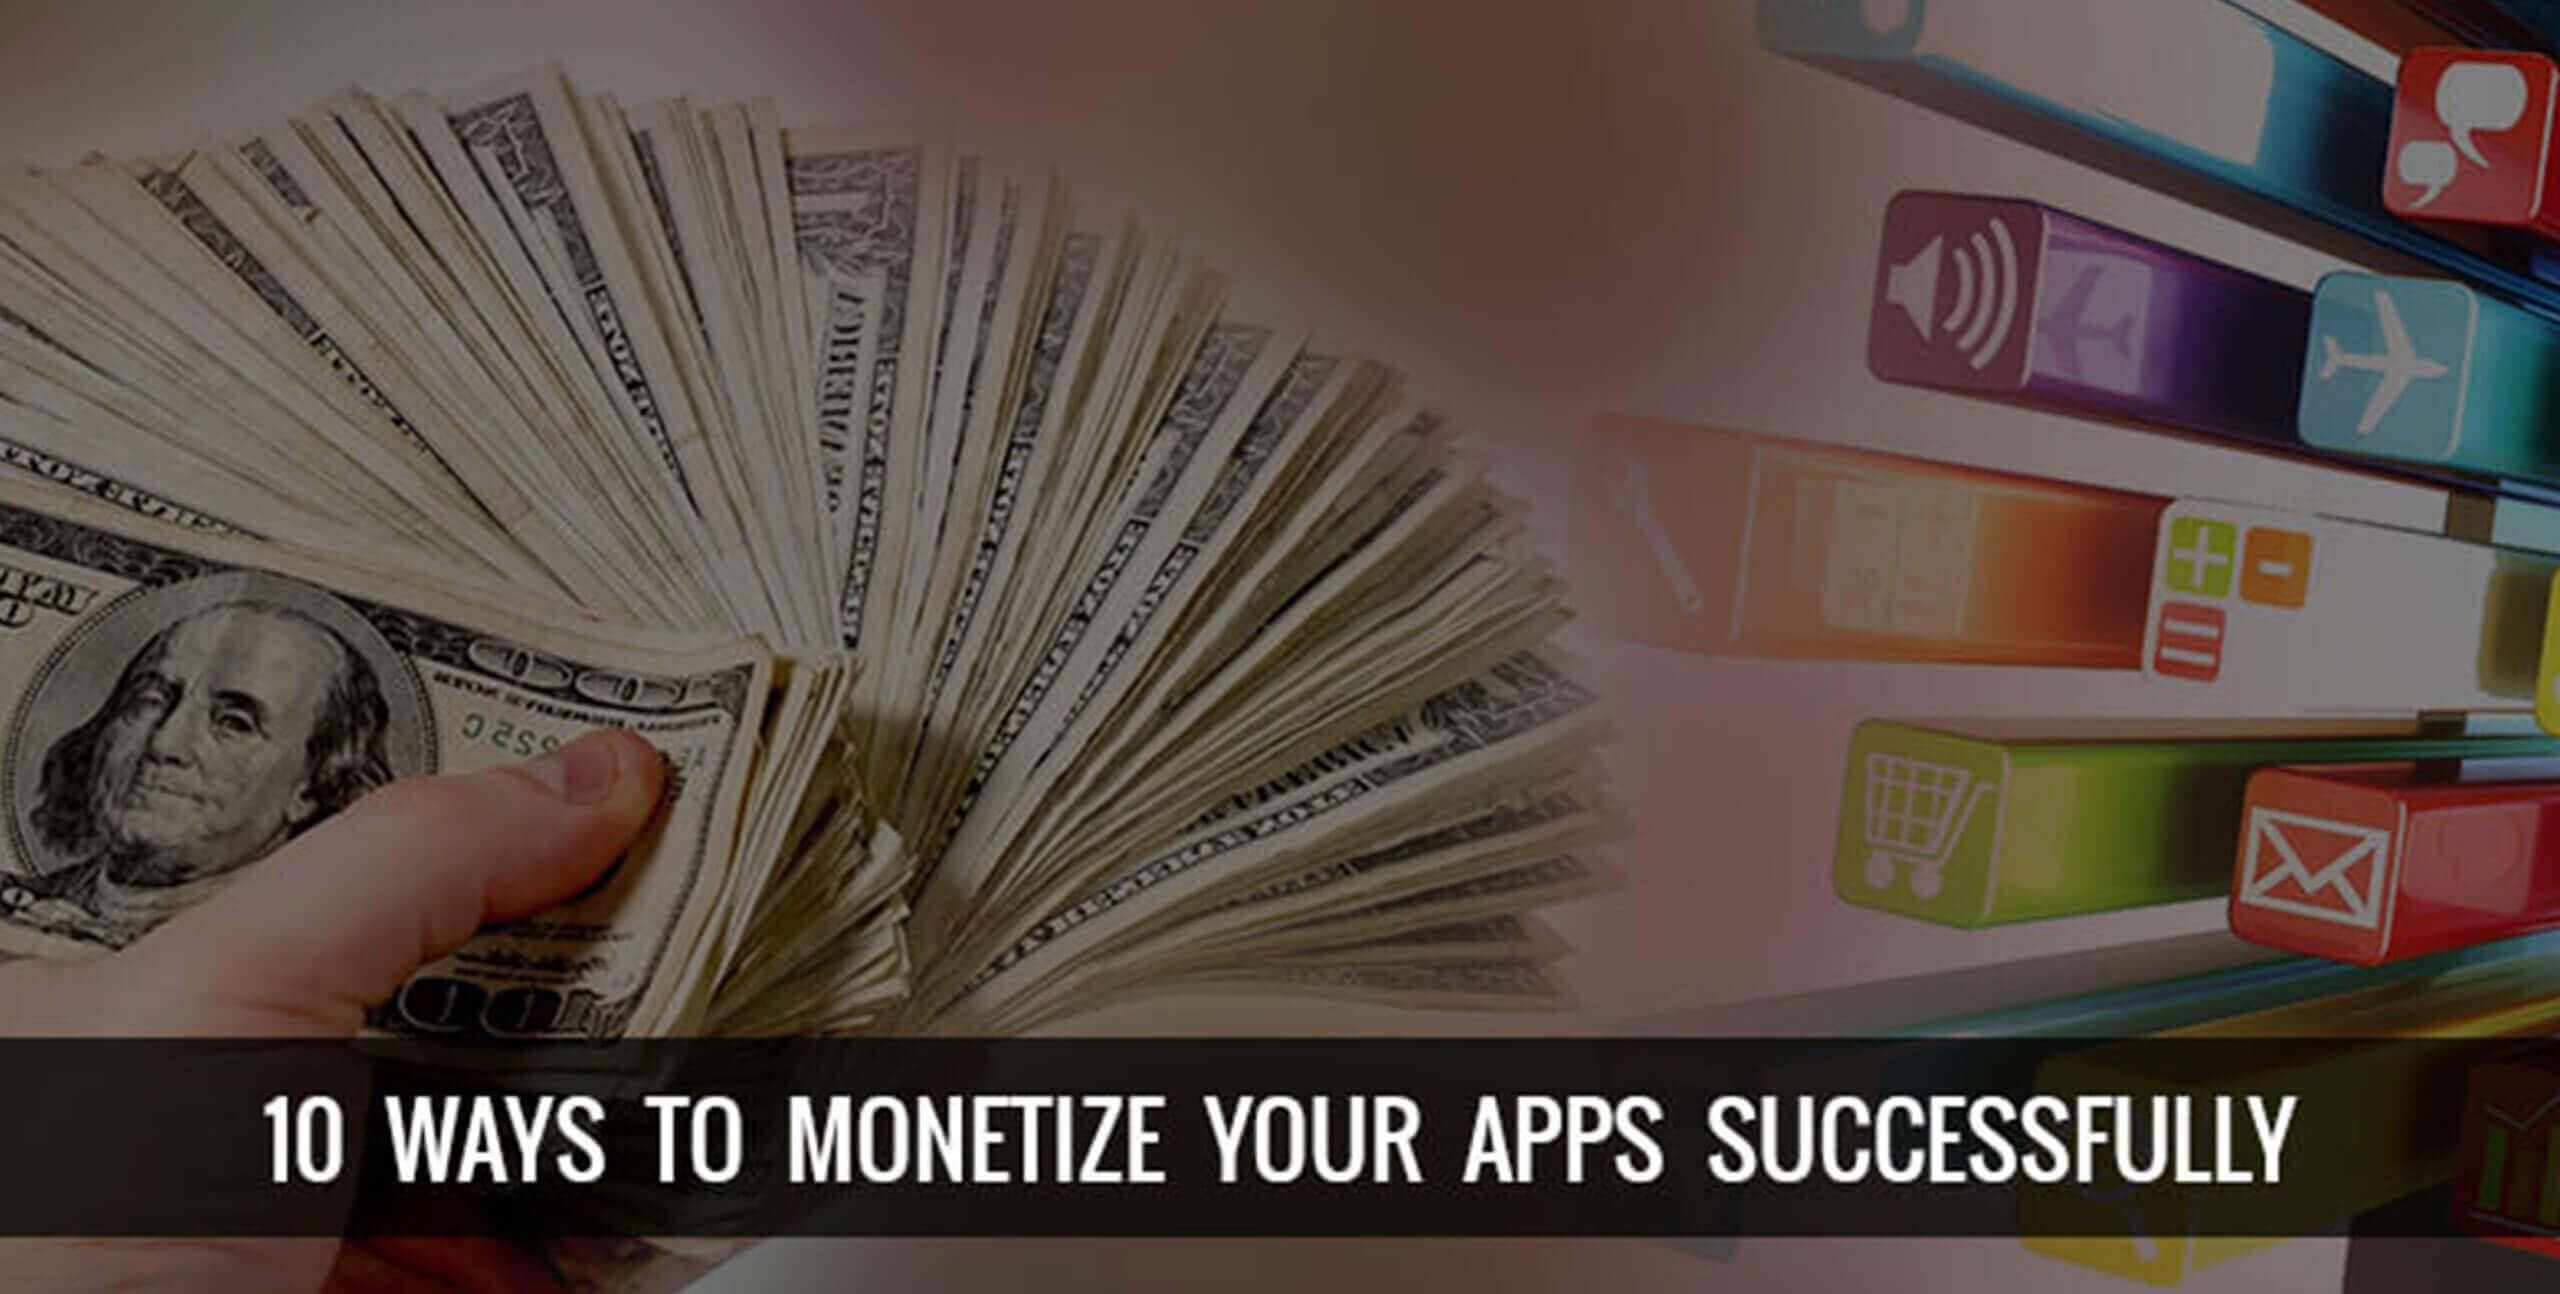 10 Ways To Monetize Your Apps Successfully